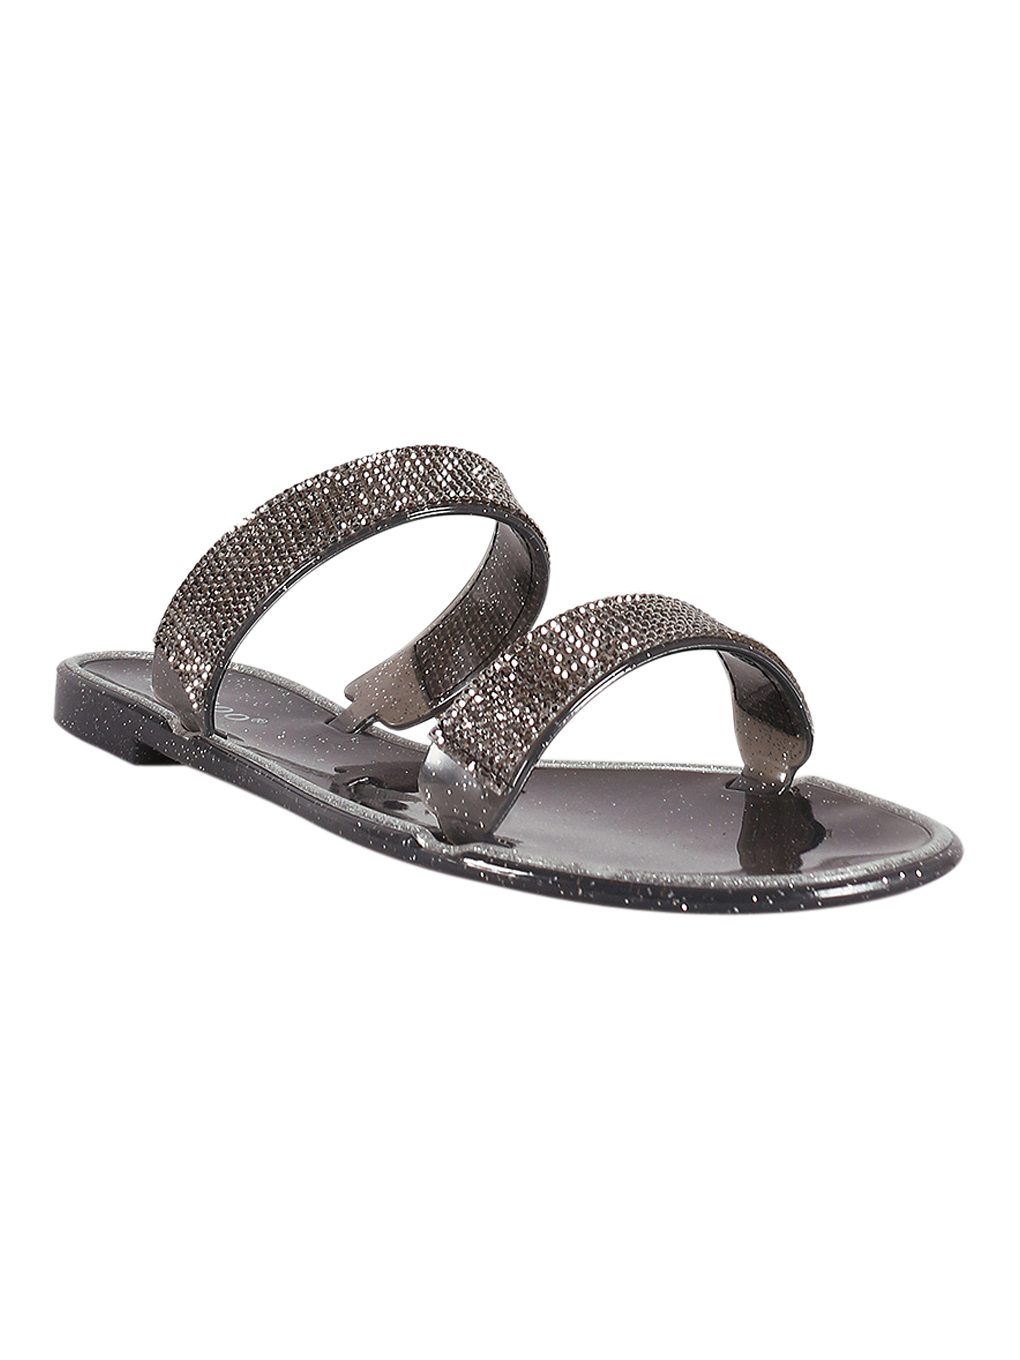 Women Rhinestone Accent Glitter Jelly Double Band Slide Sandal 18581